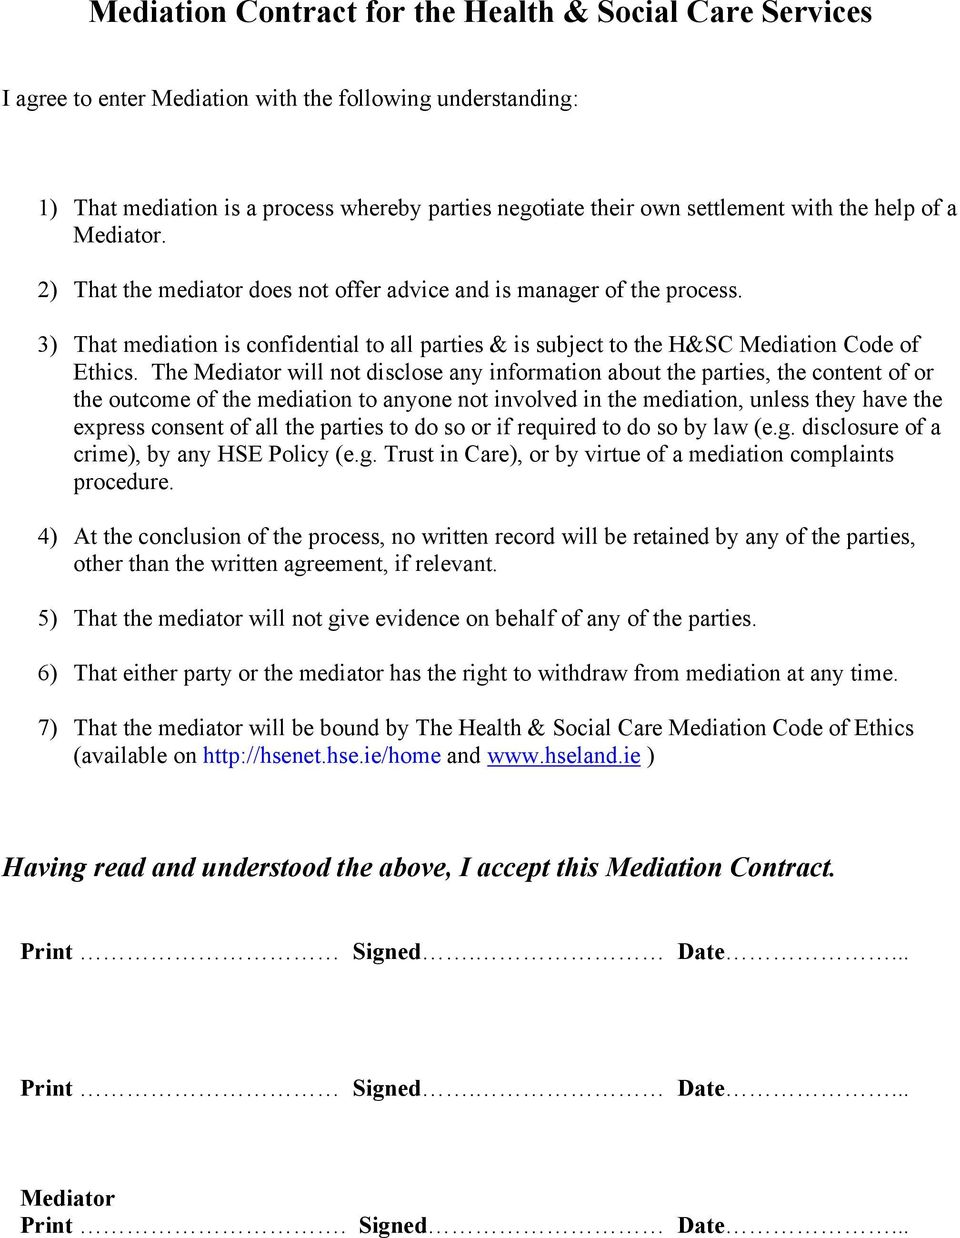 3) That mediation is confidential to all parties & is subject to the H&SC Mediation Code of Ethics.